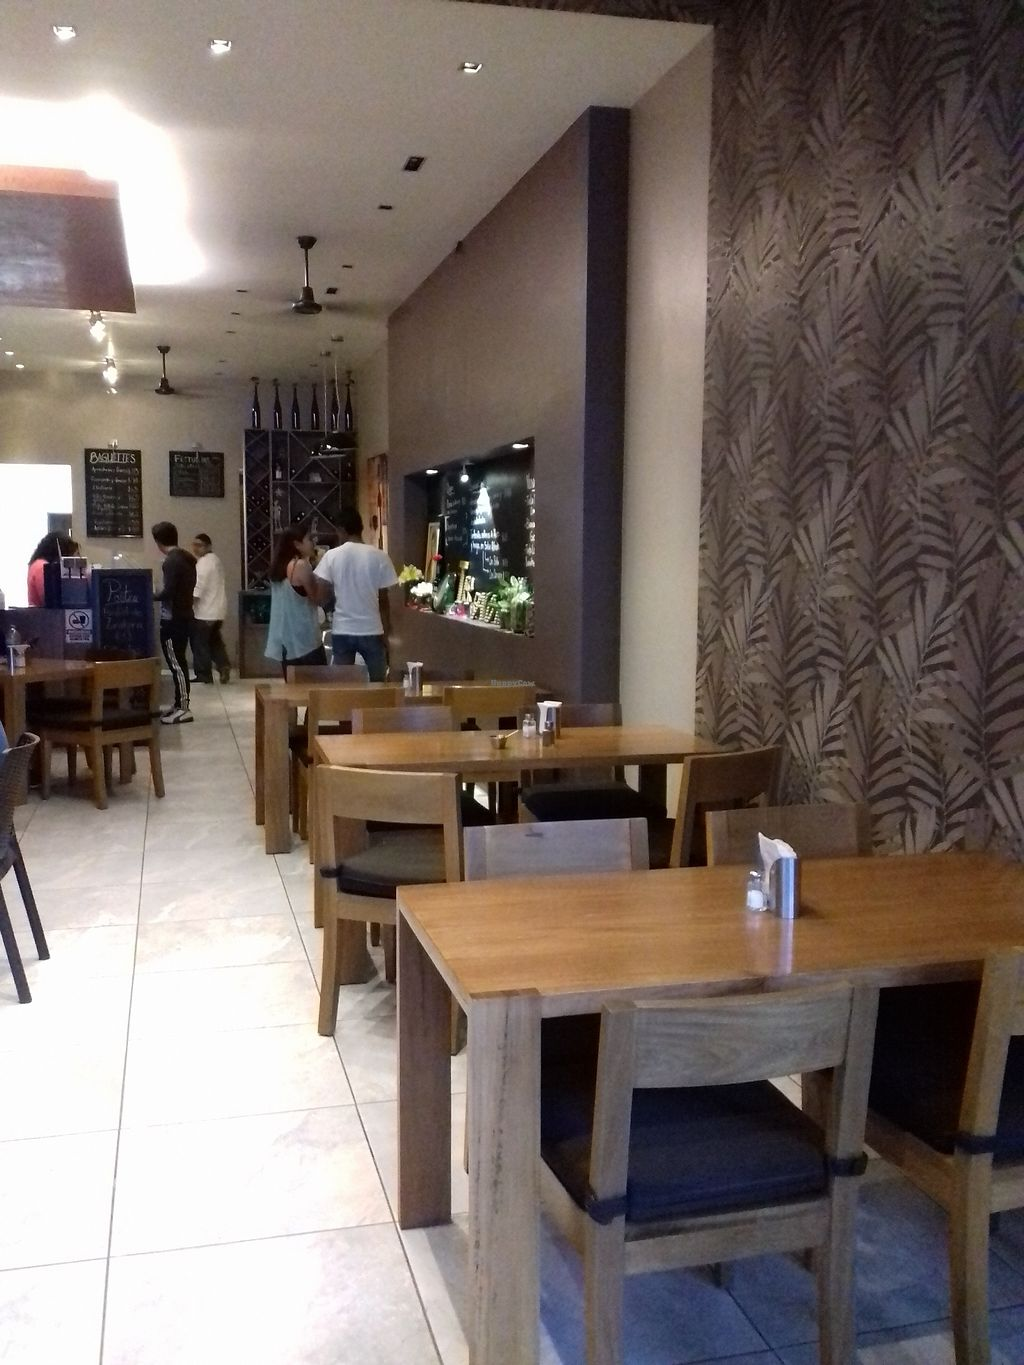 """Photo of La Terracota  by <a href=""""/members/profile/Lesvisons"""">Lesvisons</a> <br/>Inside the restaurant. Nice atmosphere <br/> October 20, 2017  - <a href='/contact/abuse/image/102903/316807'>Report</a>"""